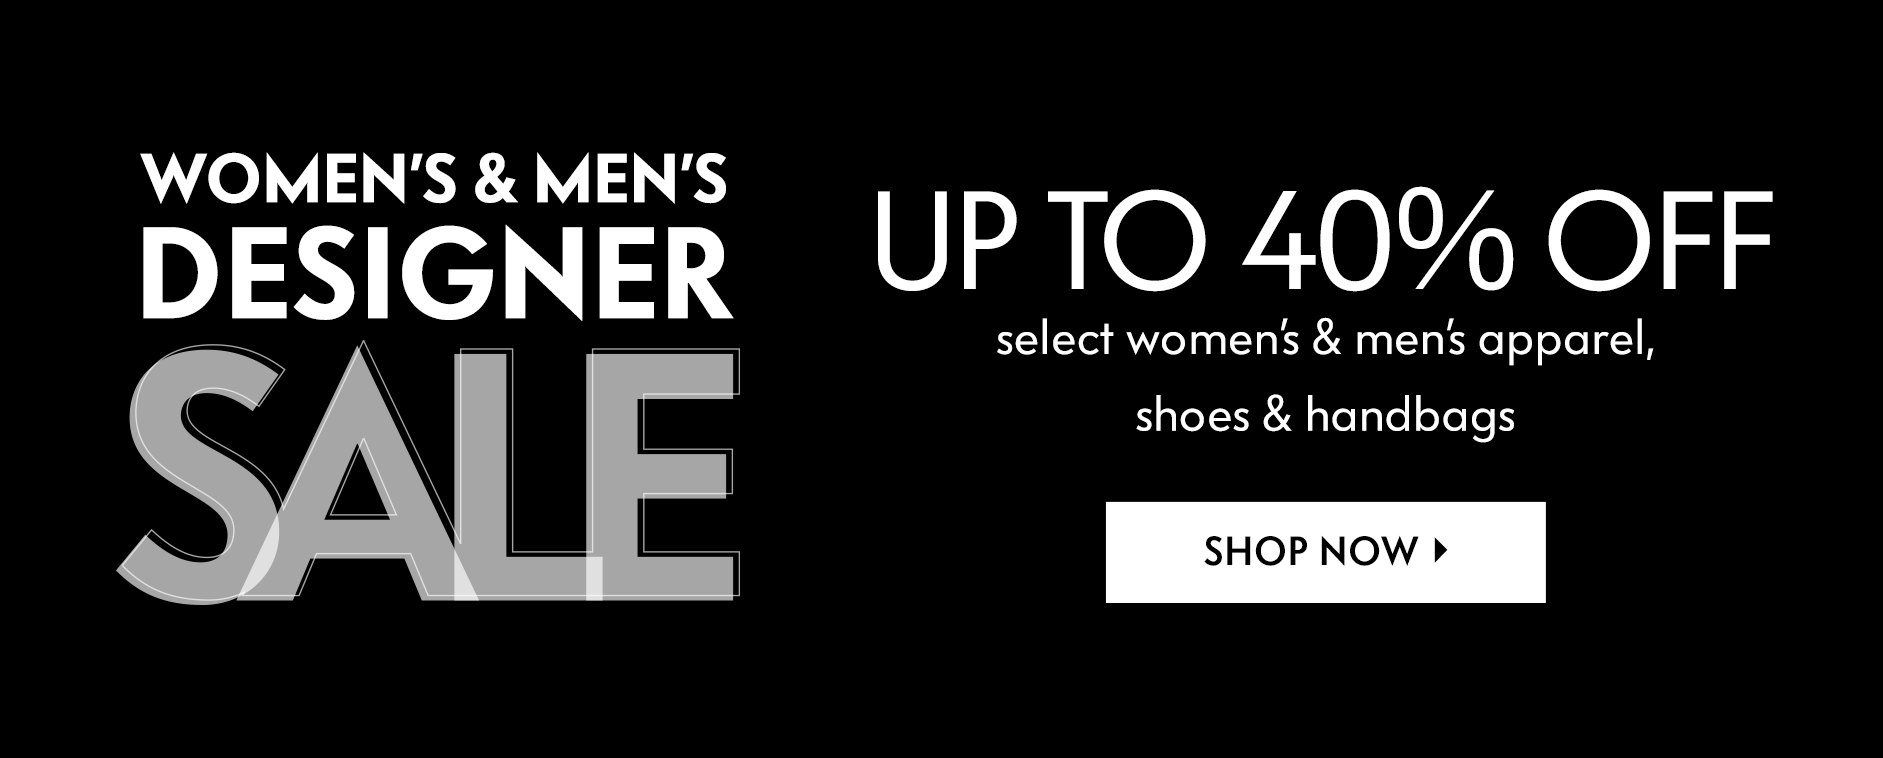 Women's & Men's: Designer Sale - Up to 40% off select styles